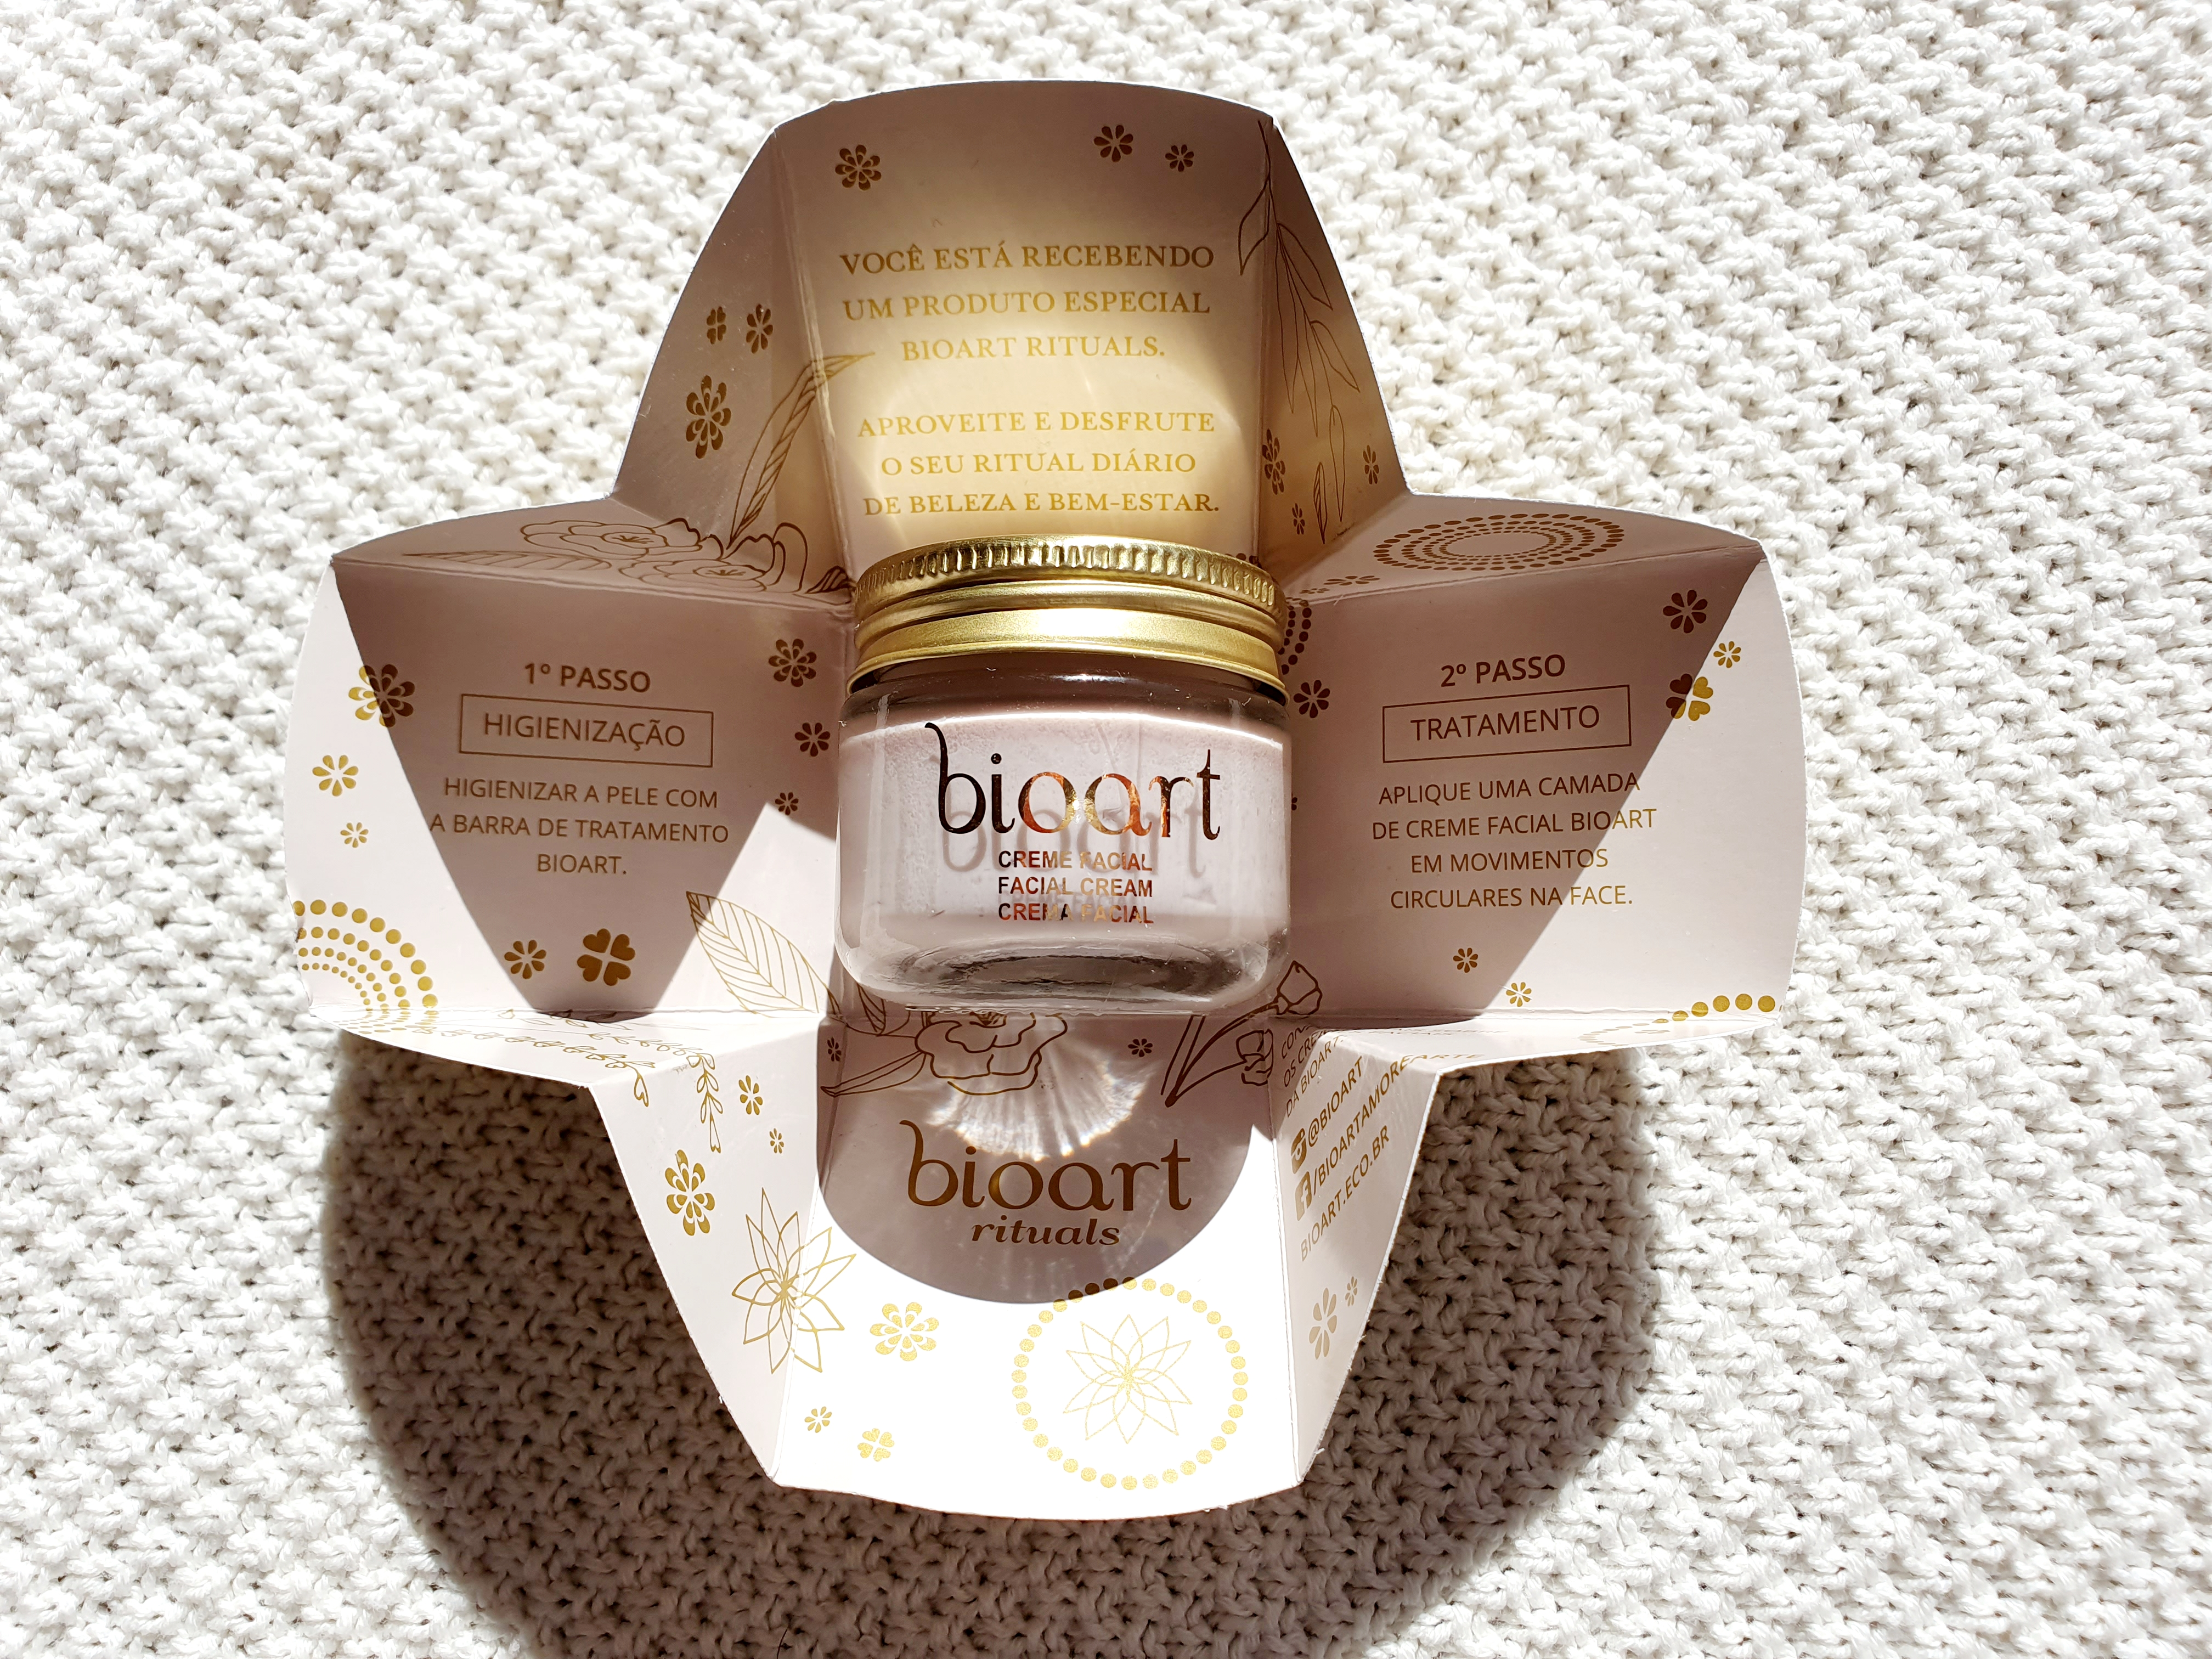 Bioart beauty products